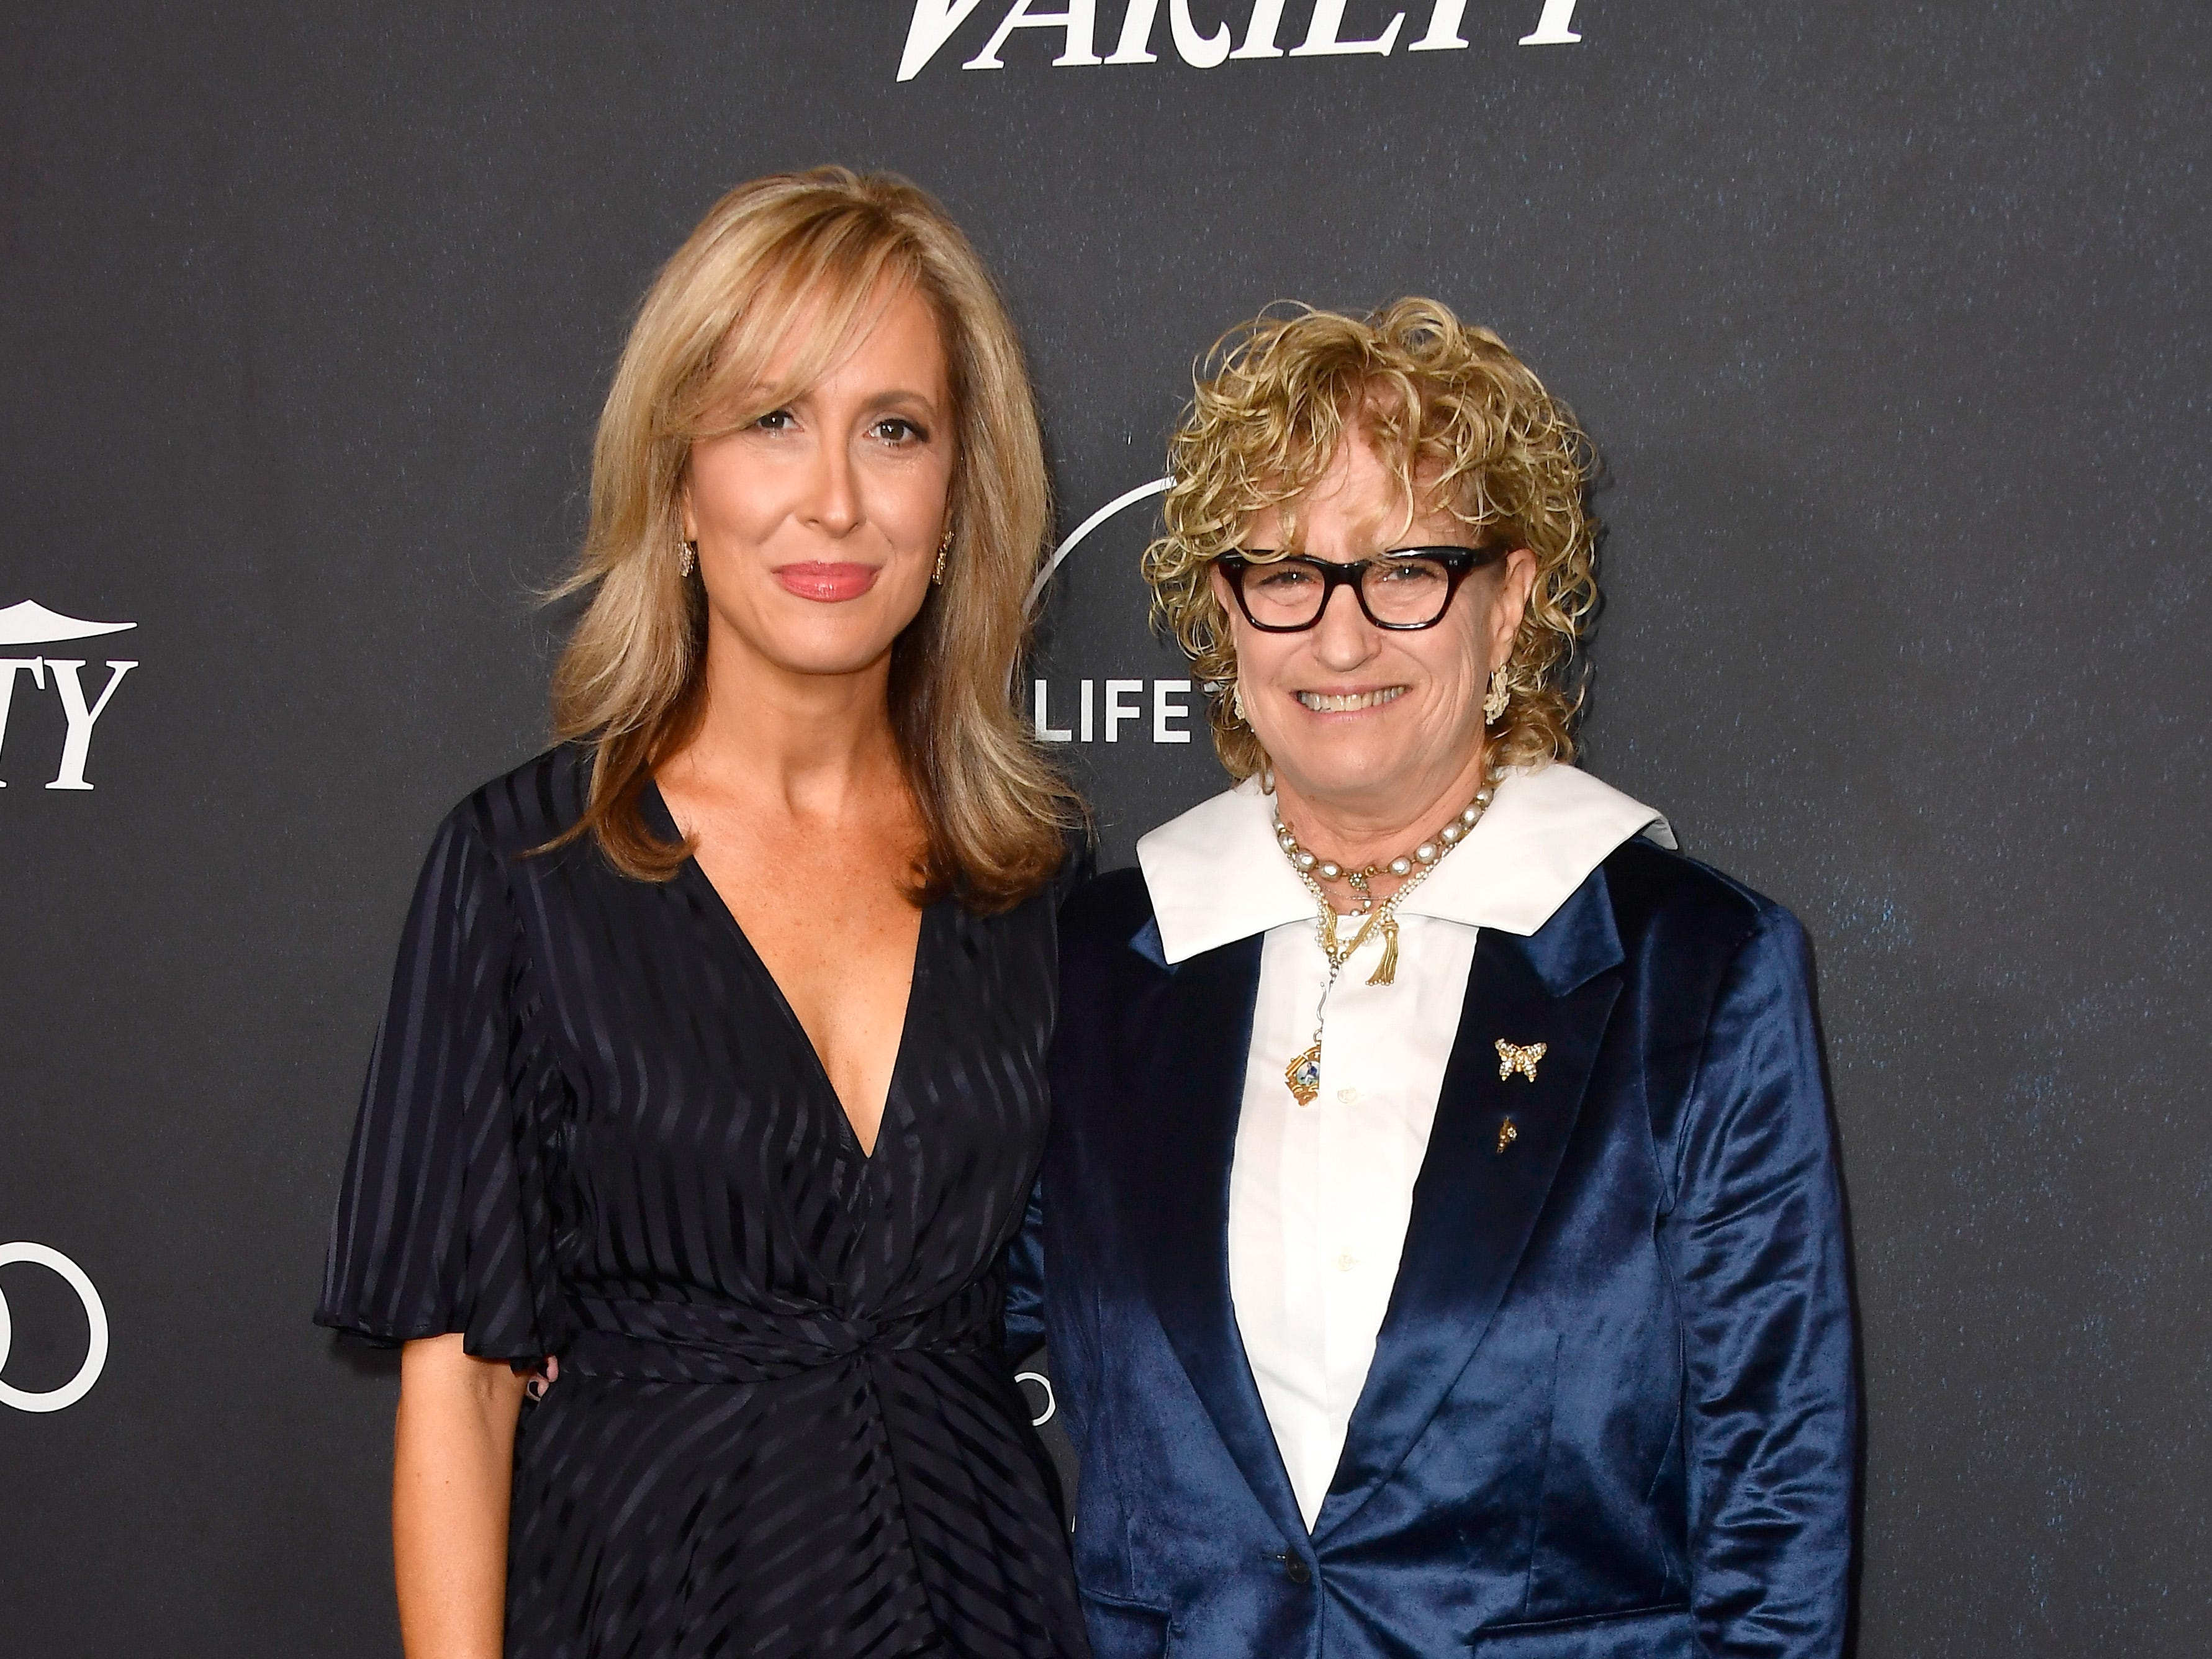 Publisher of Variety Michelle Sobrino-Stearns (L) and Co-Editor-In-Cheif of Variety Claudia Eller